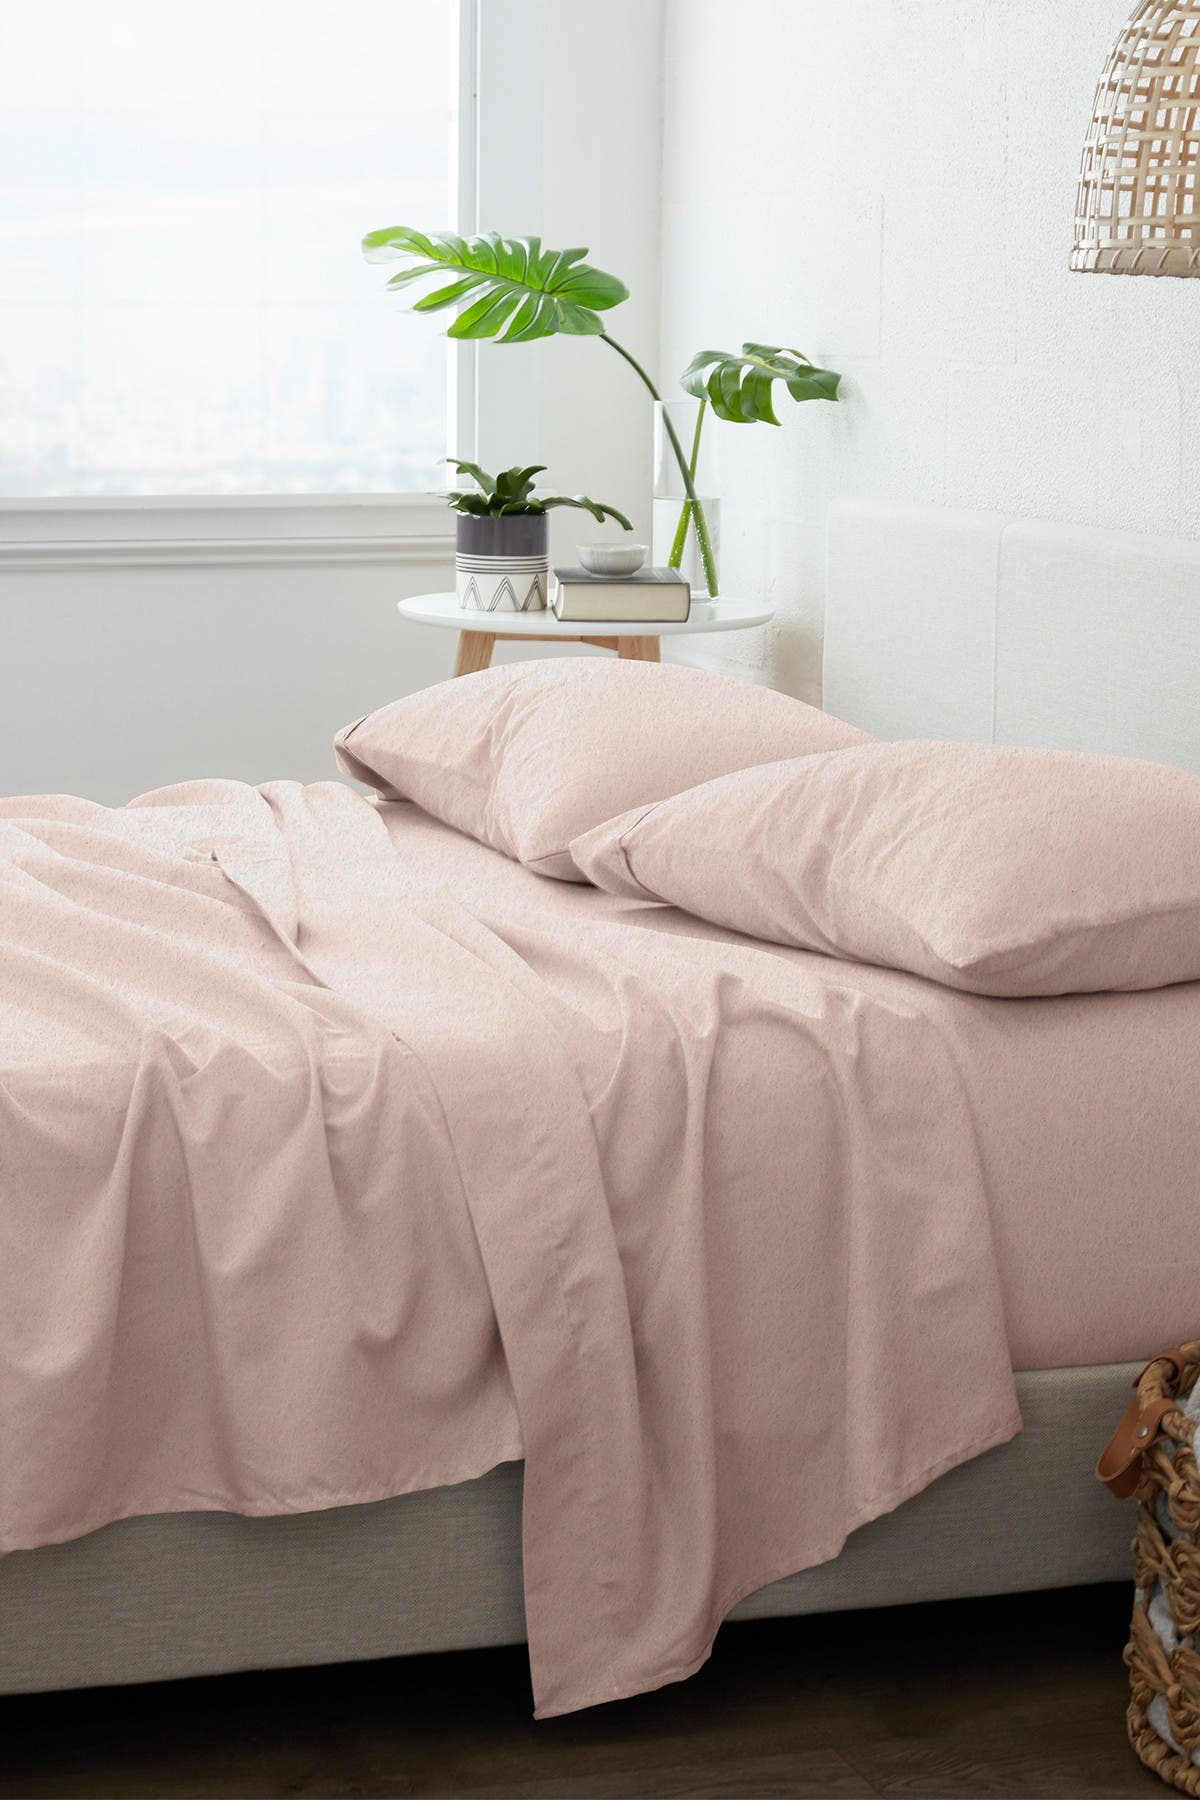 Image of IENJOY HOME Home Collection Premium 4-Piece Twin Ultra Soft Flannel Bed Sheet Set - Blush